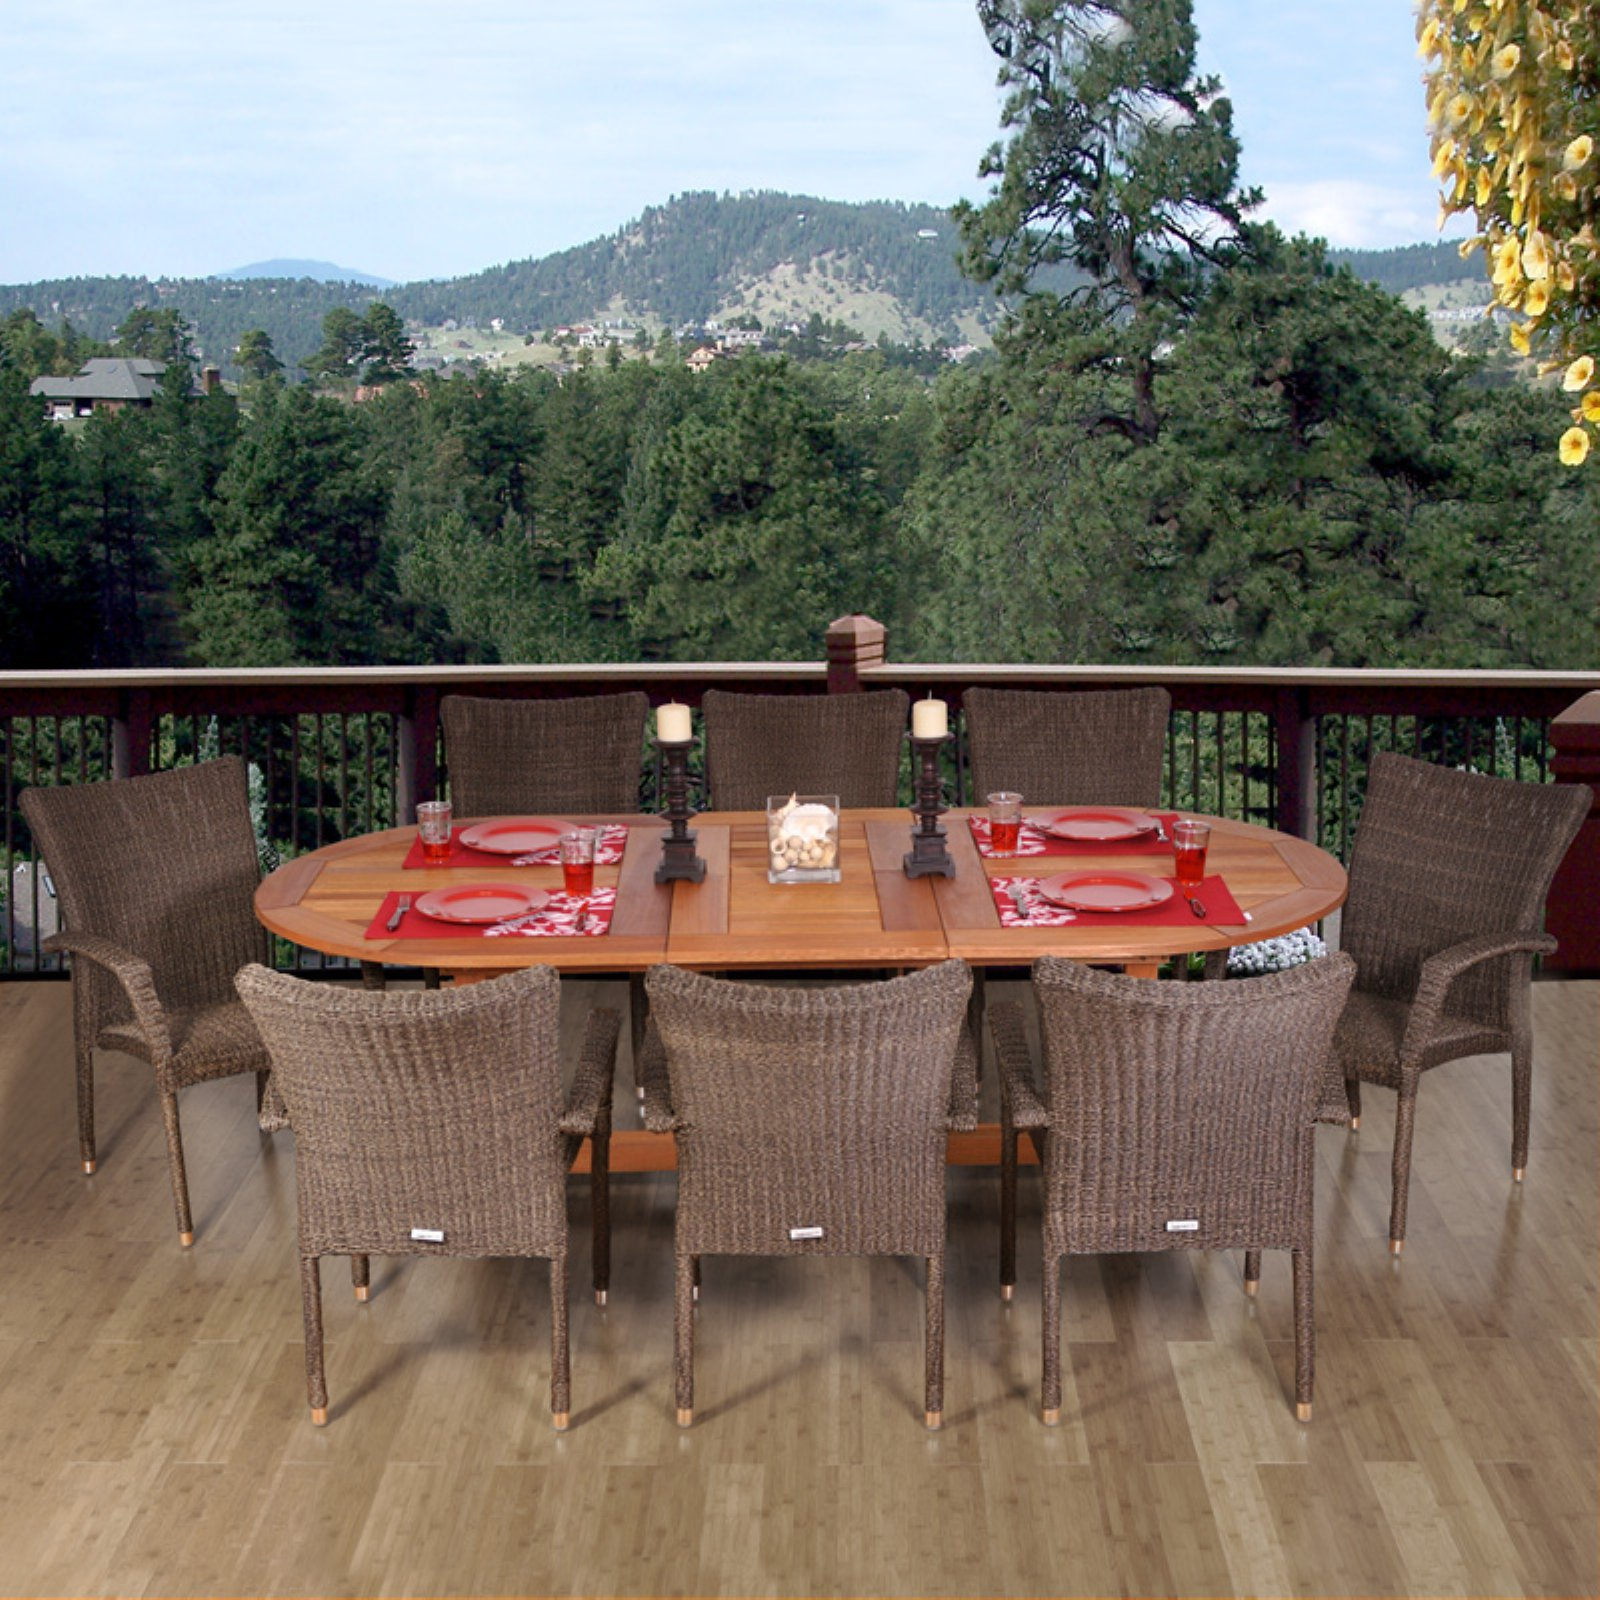 Provence 9-Piece Eucalyptus/Wicker Square Patio Dining Set, Brown